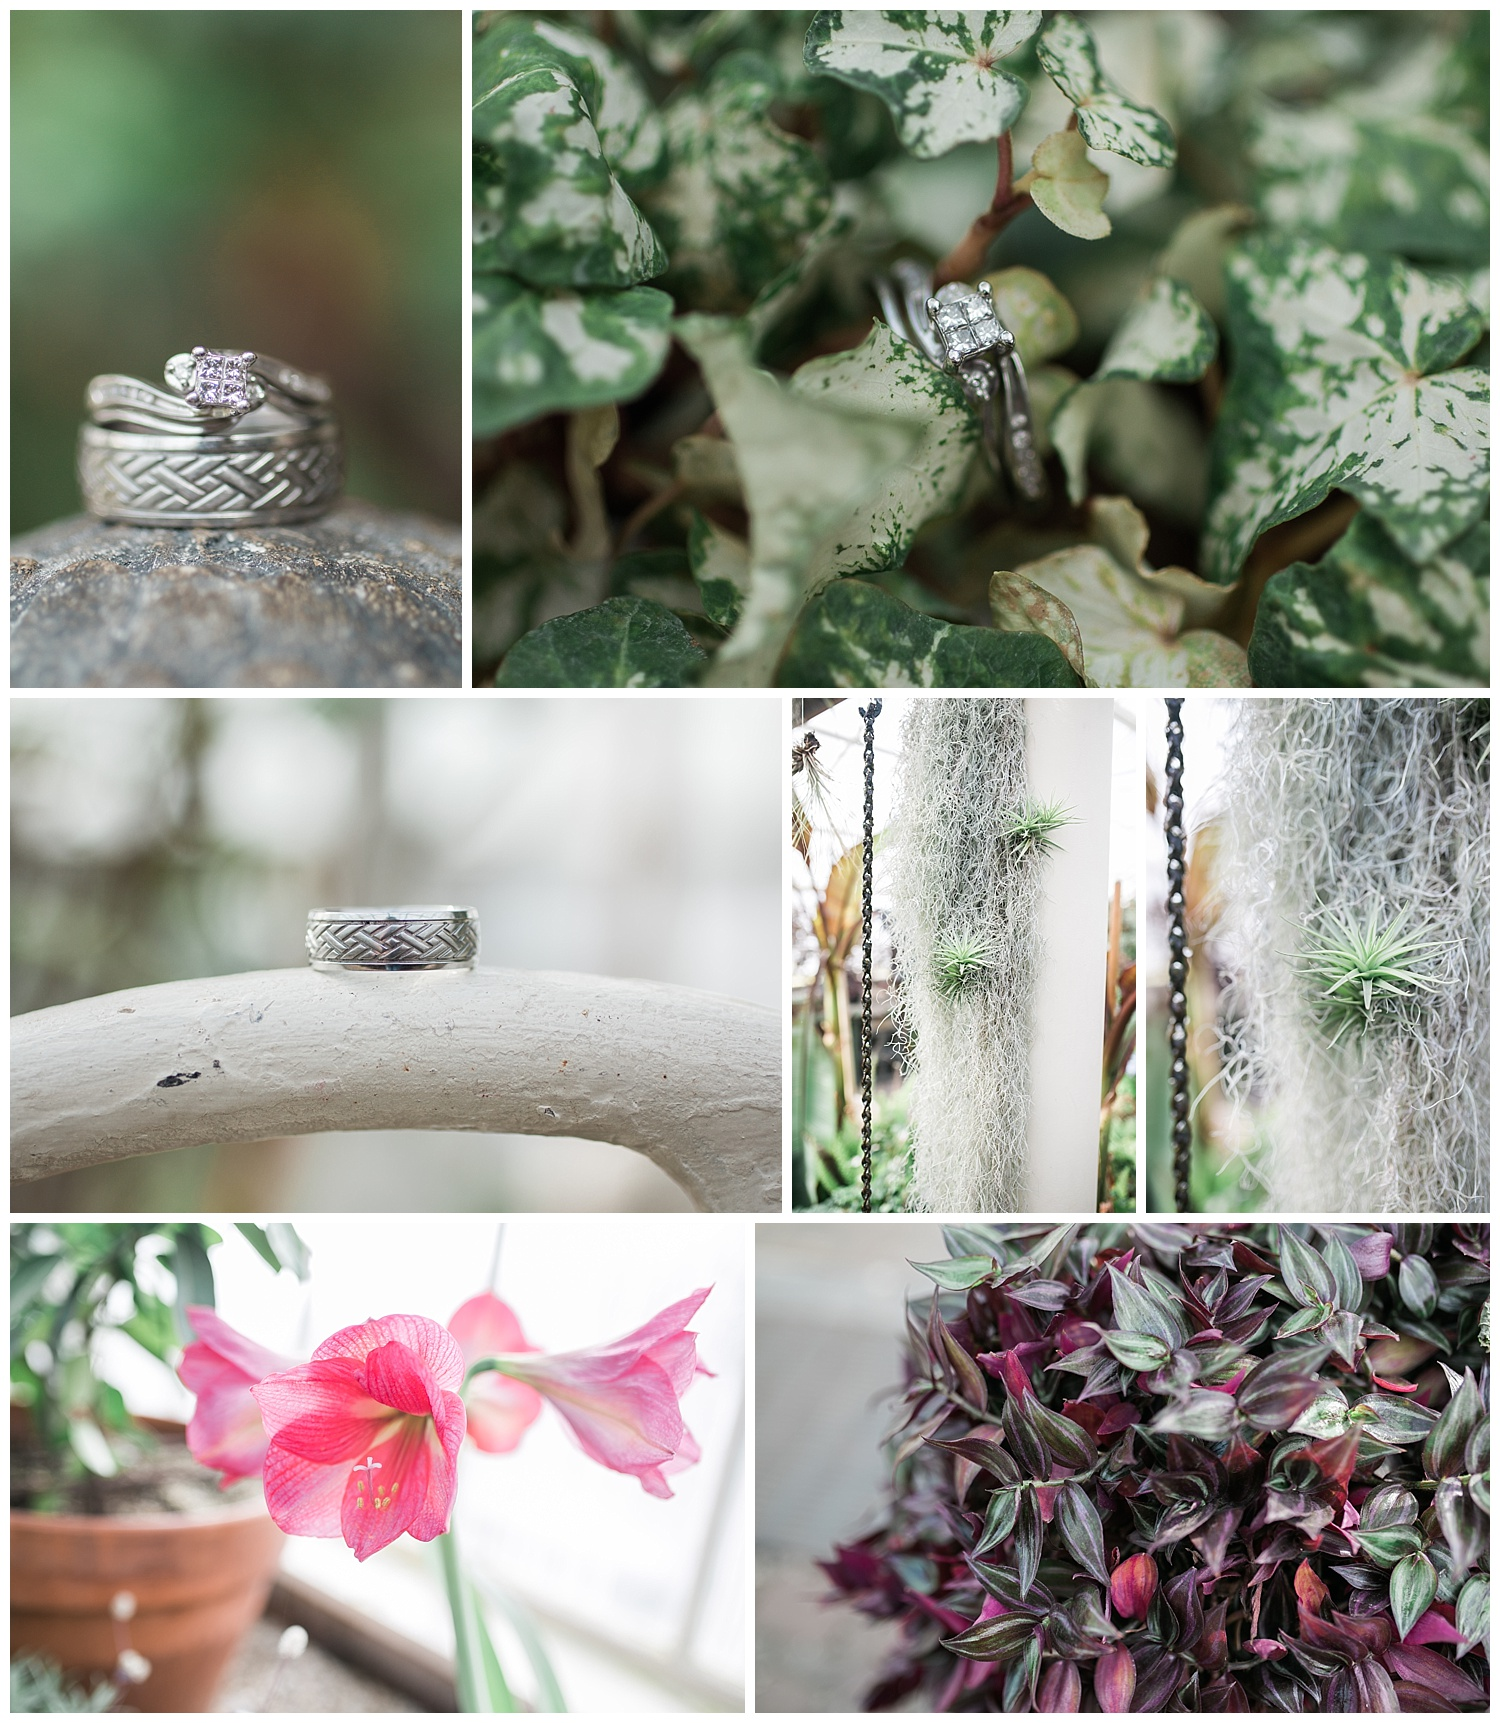 Buffalo Botanical gardens wedding - Buffalo NY Lass and Beau 106.jpg